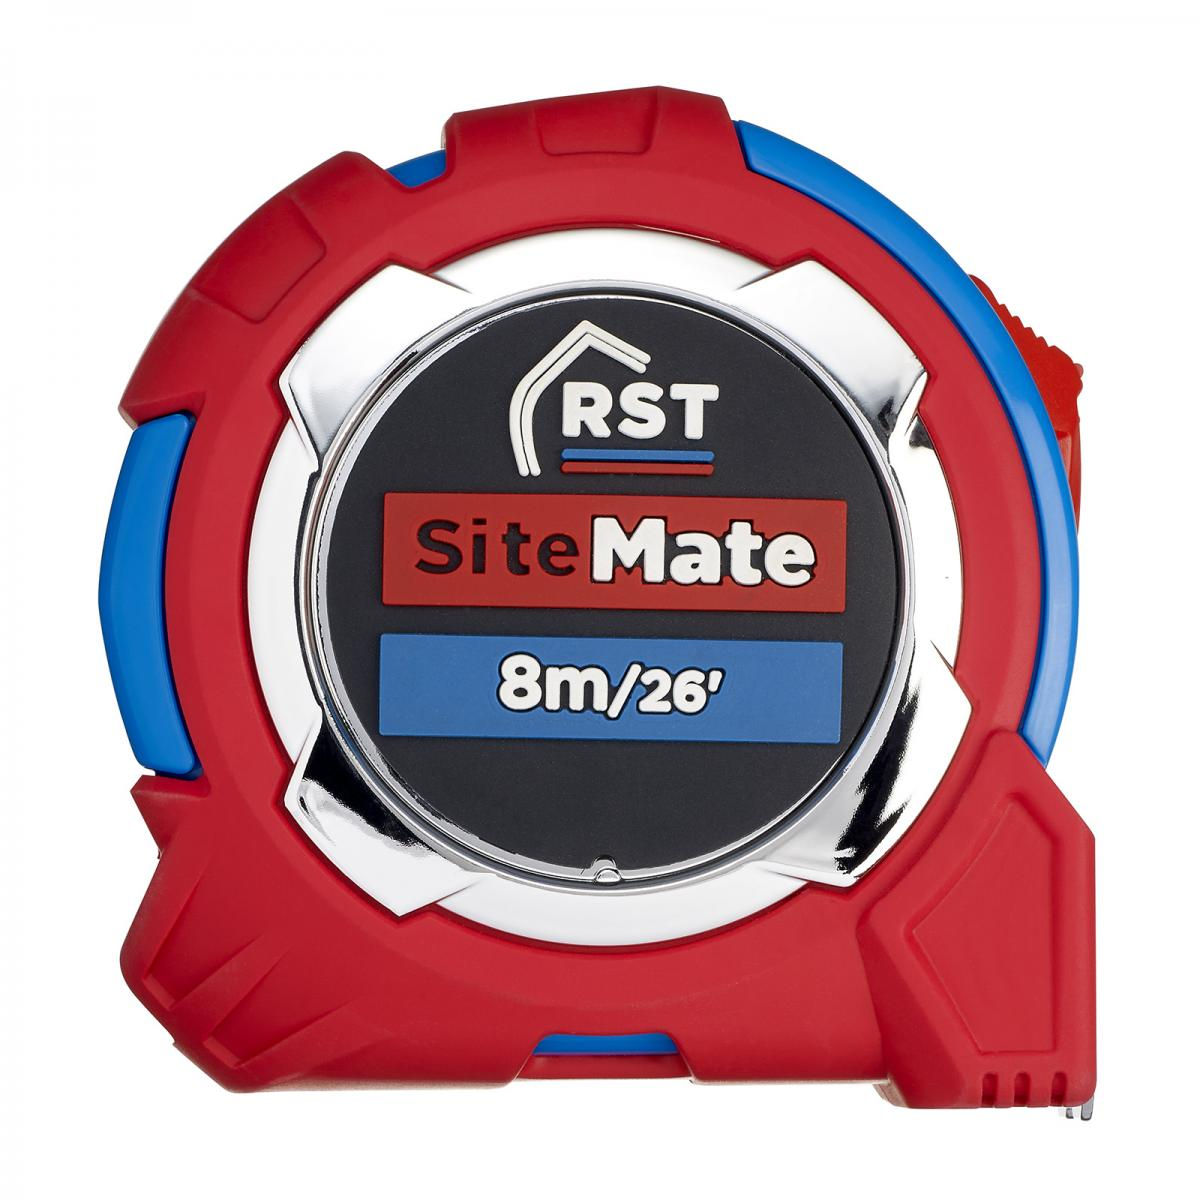 RST Site Mate 8m/26ft Tape Measure – Now Only £10.00